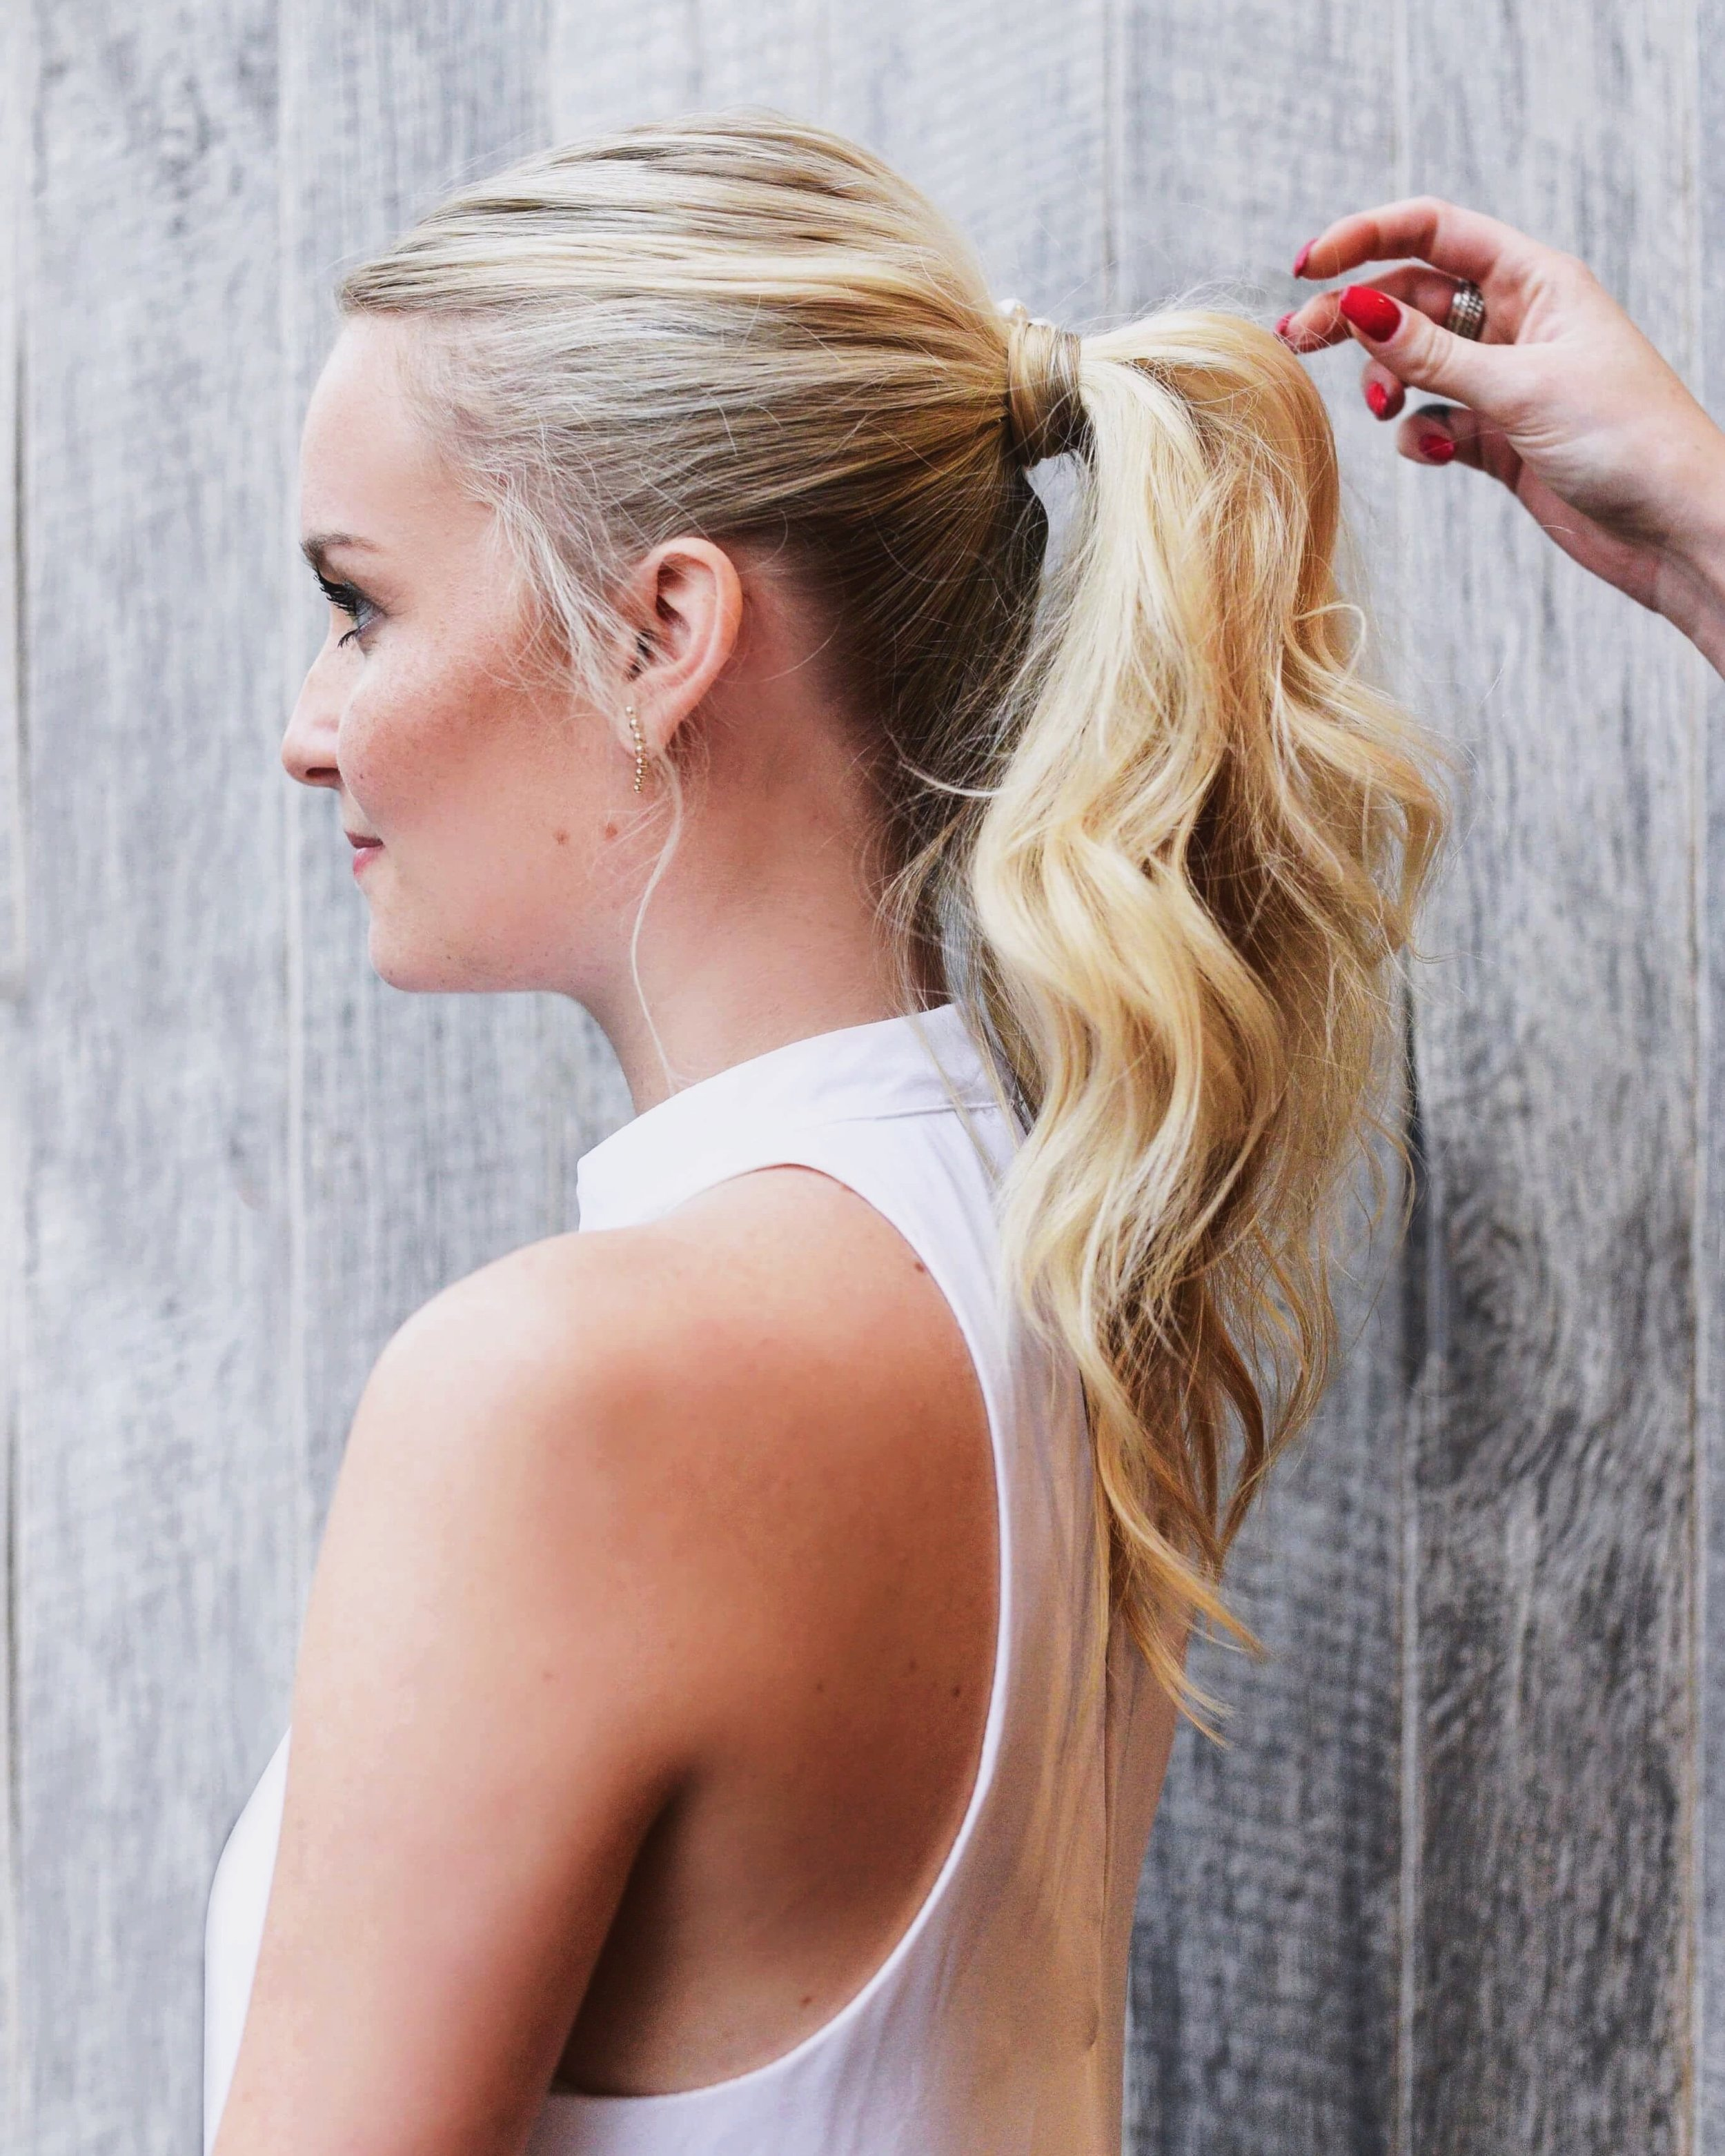 Dry Styles Include… - curling, straightening, ponytail, fishtail, top knot, dutch braid, french braid